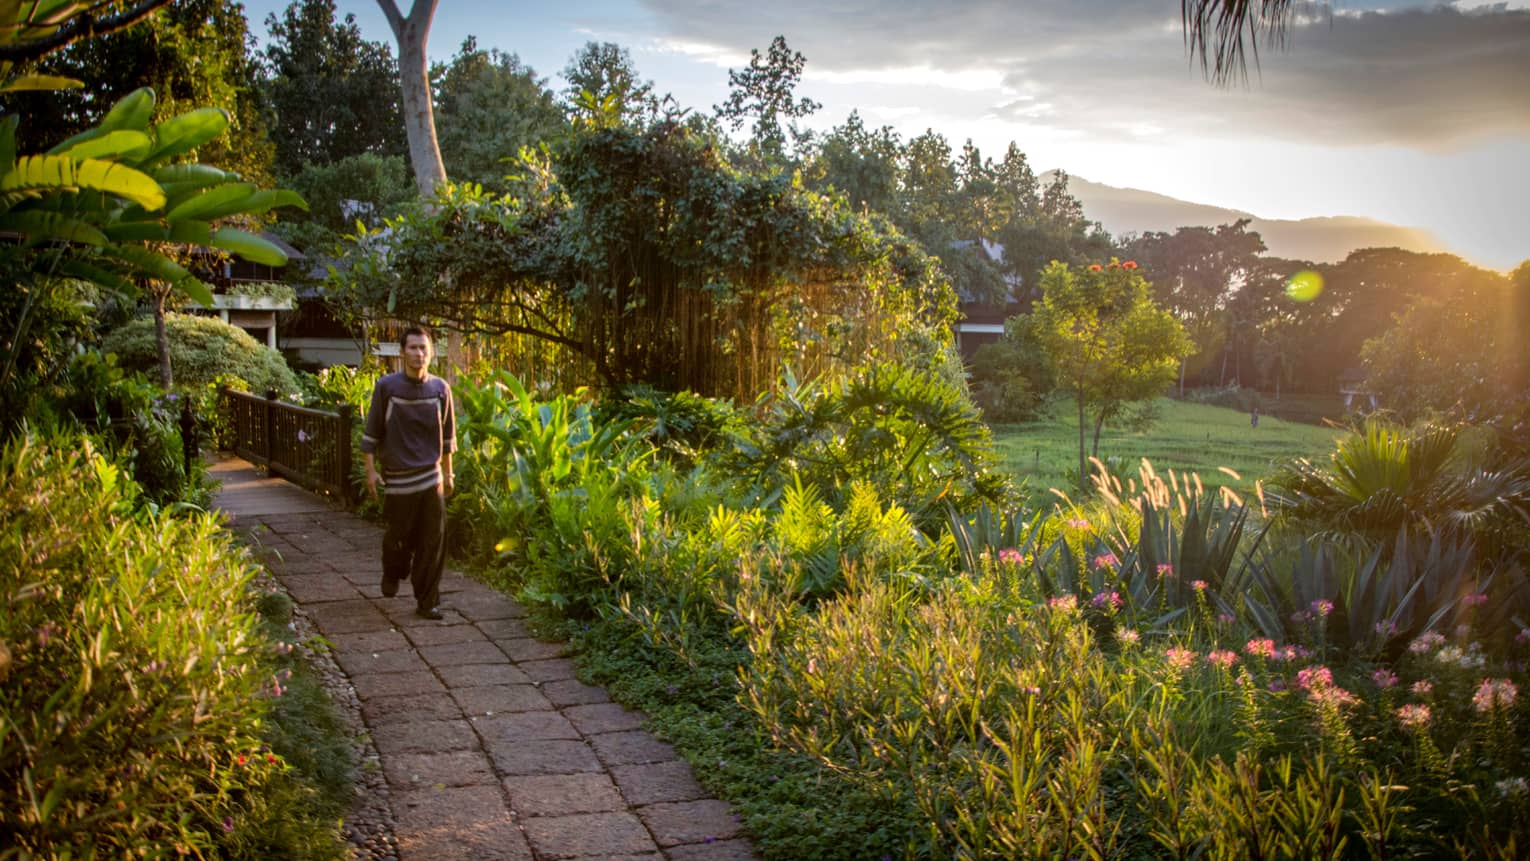 Man walks down brick path past tropical plants, garden and rice plantation fields at sunrise